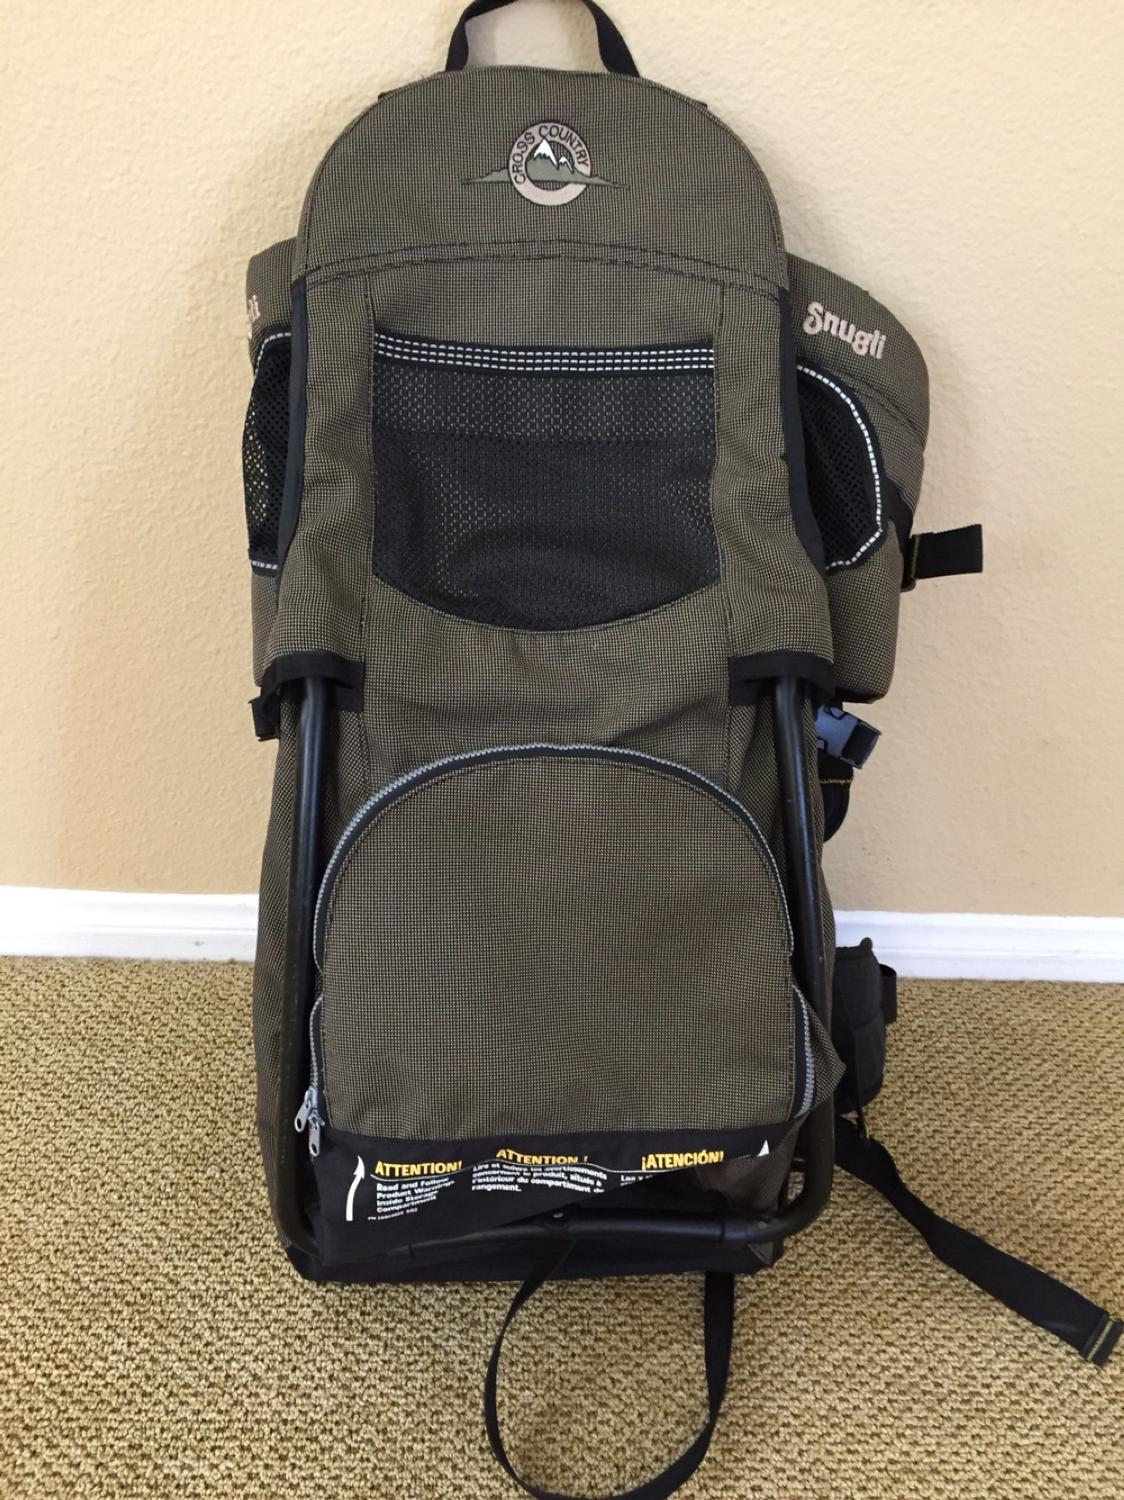 c41aa22c84d Snugli Cross Country Backpack Child Carrier